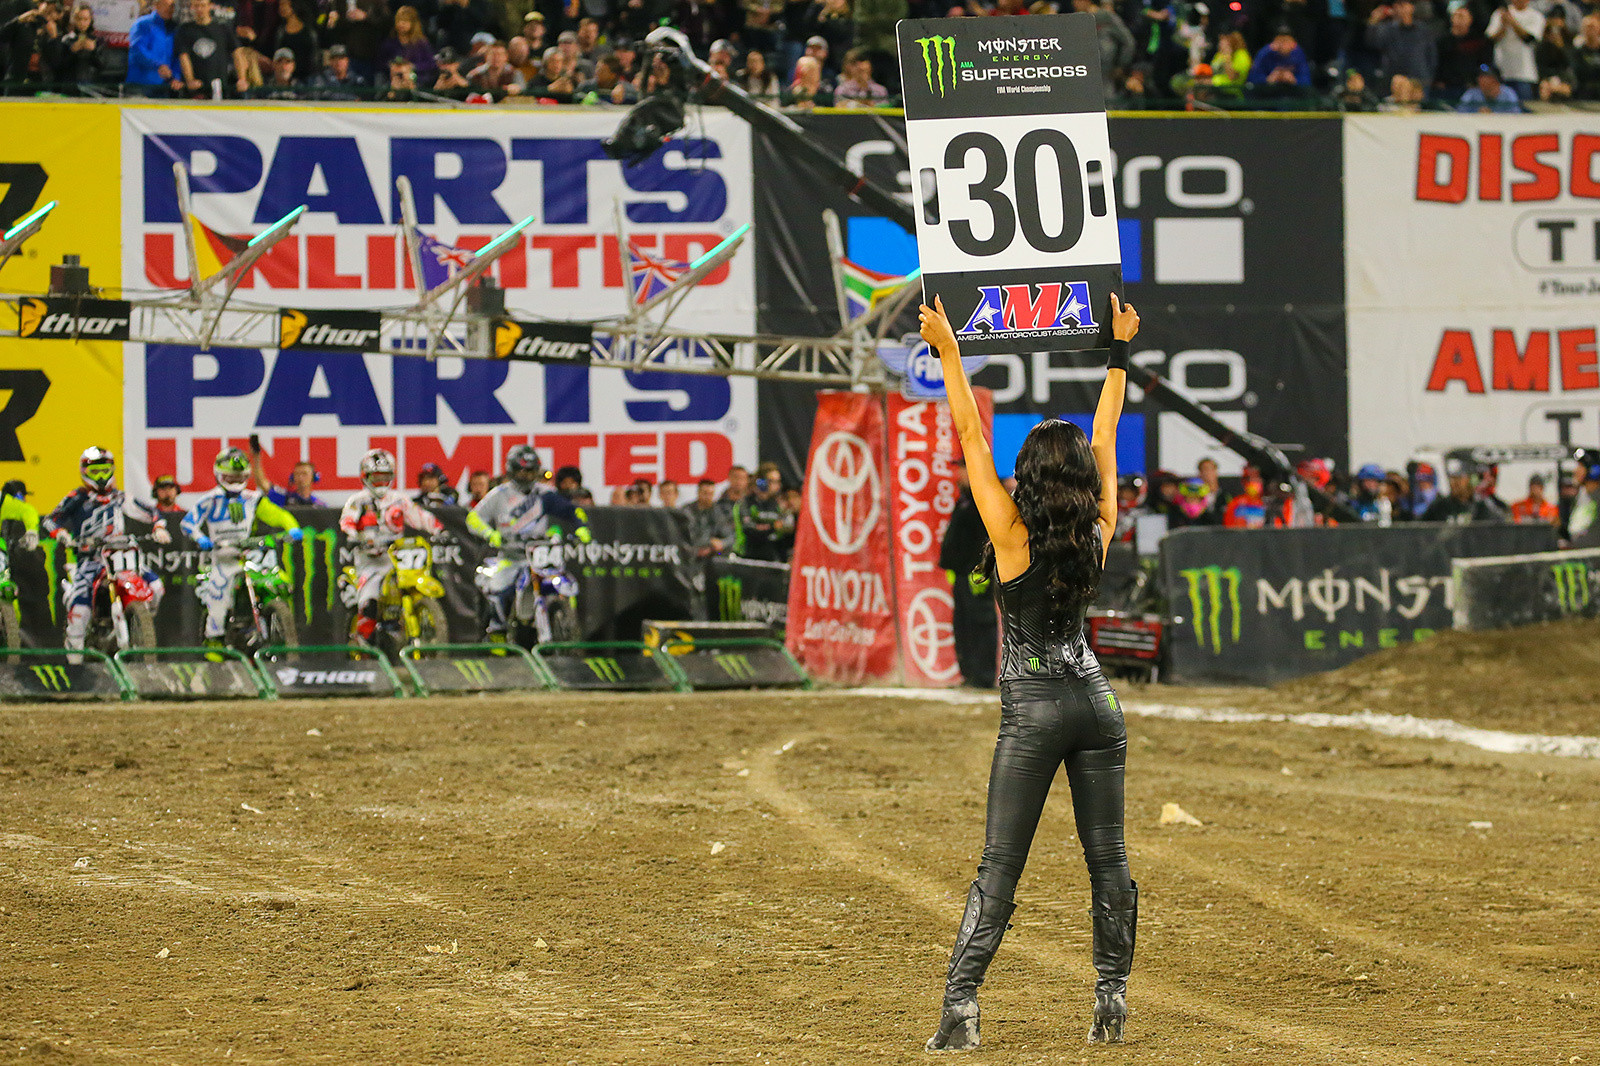 Photo Blast: Anaheim 1...30 seconds to #dropthegate - Photo Blast: Anaheim 1 - Motocross Pictures - Vital MX